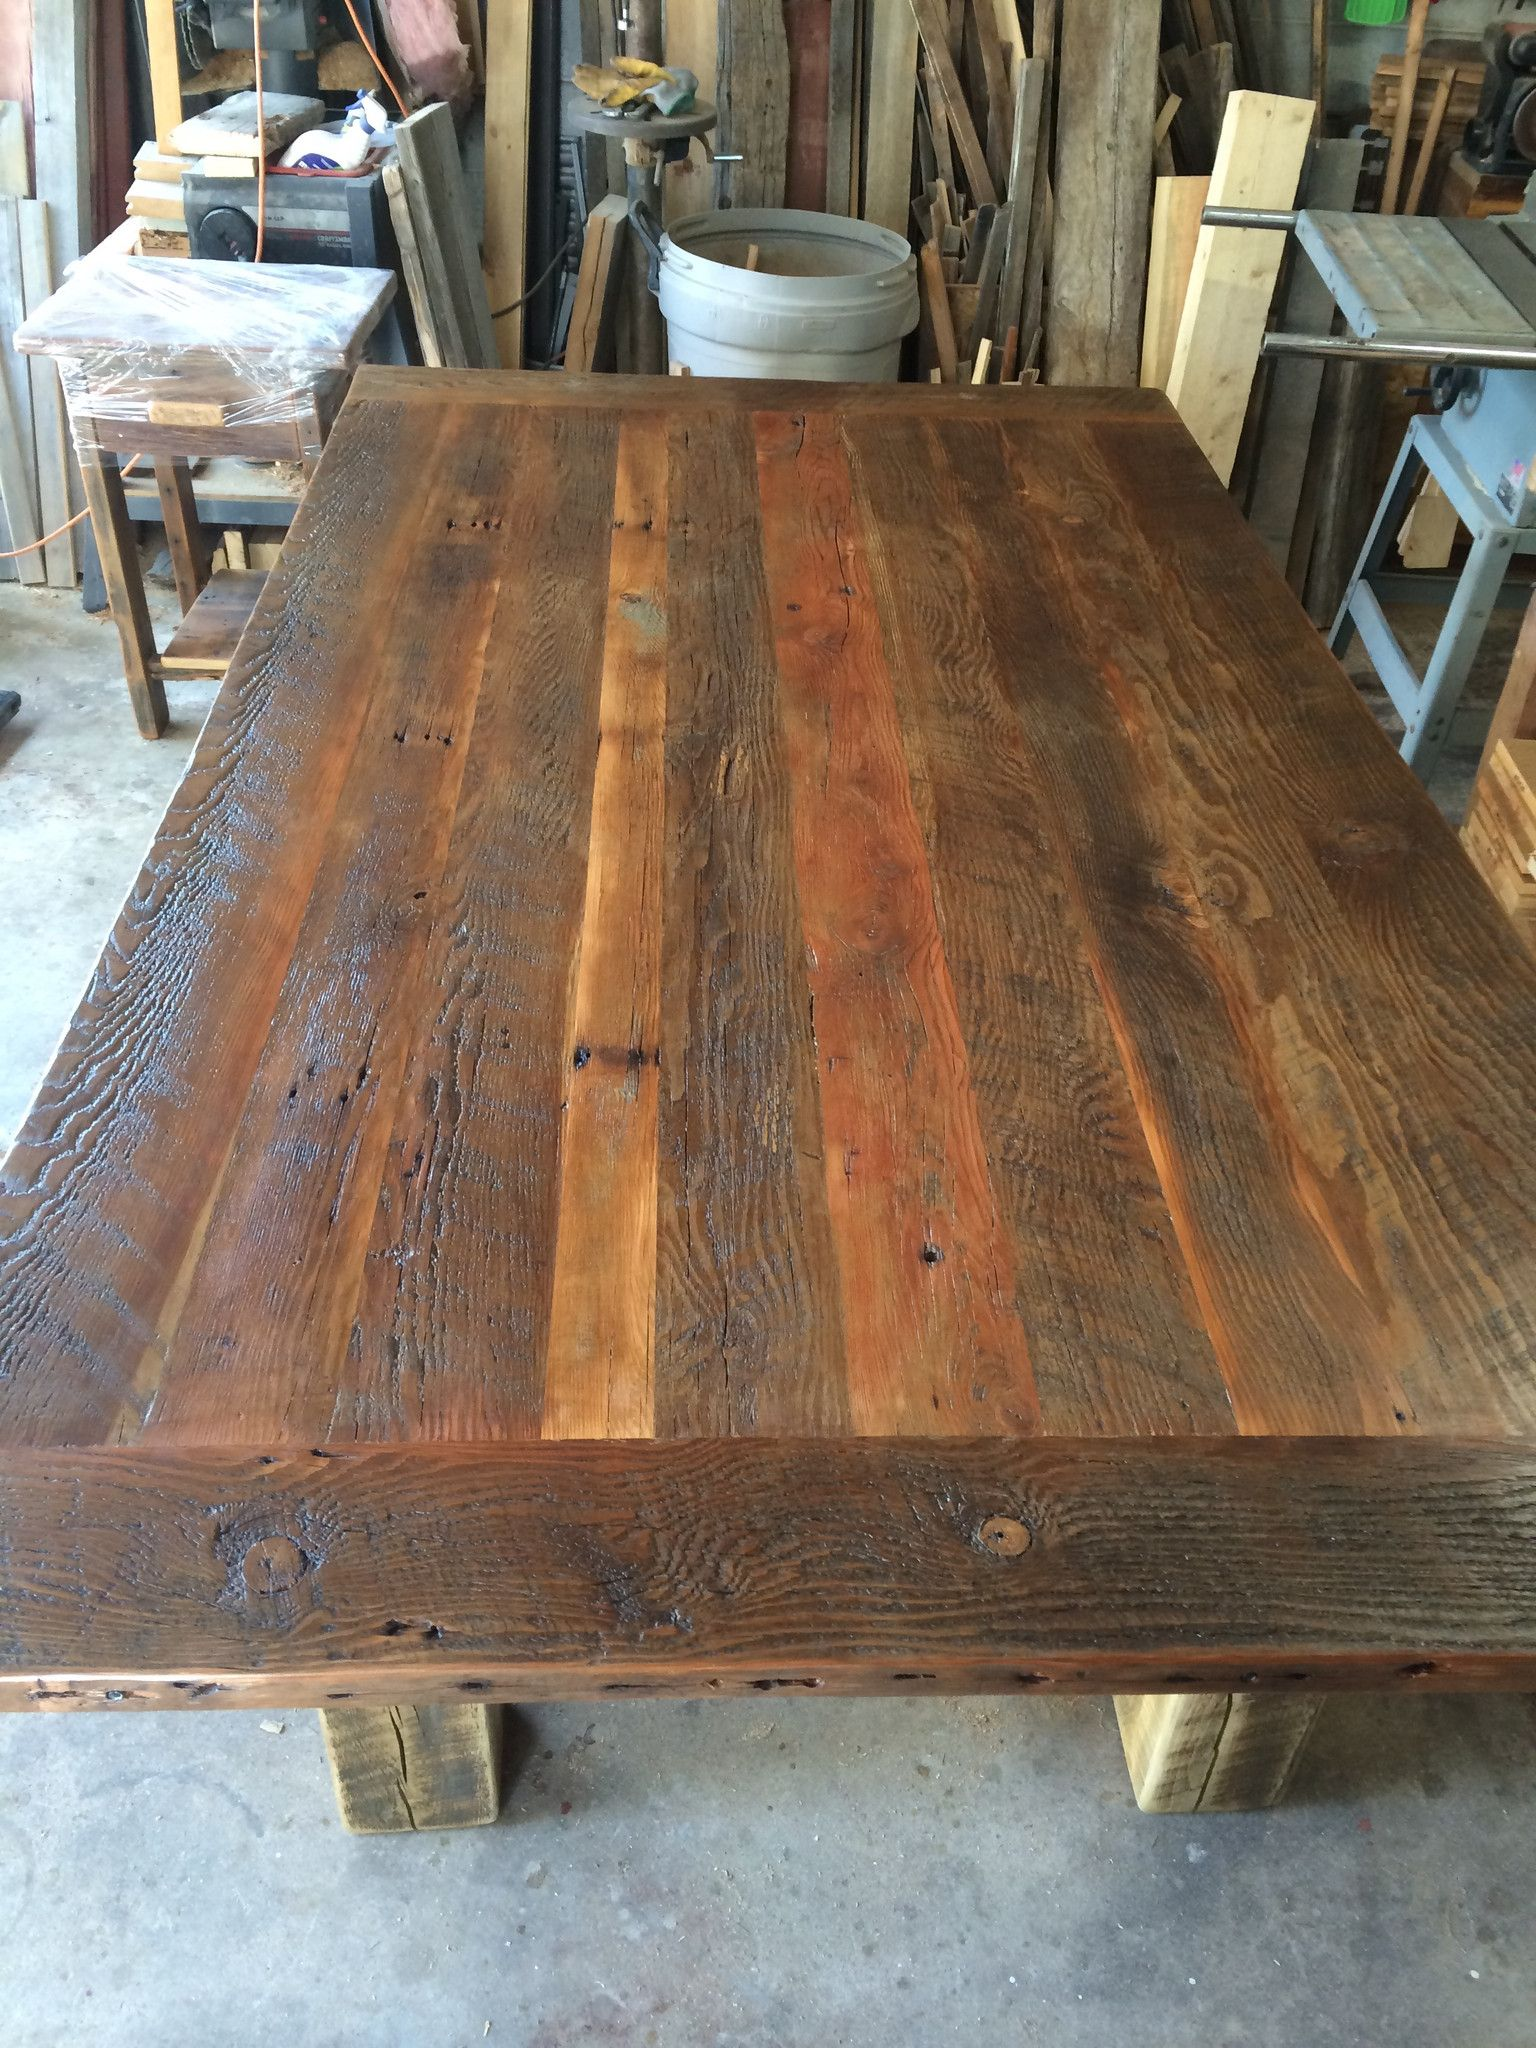 Dimensions 36 X48 X31 36 X60 X31 36 X72 X31 36 X84 X31 42 X60 X31 42 X Woodworking Projects Furniture Wood Dining Table Kitchen Table Wood